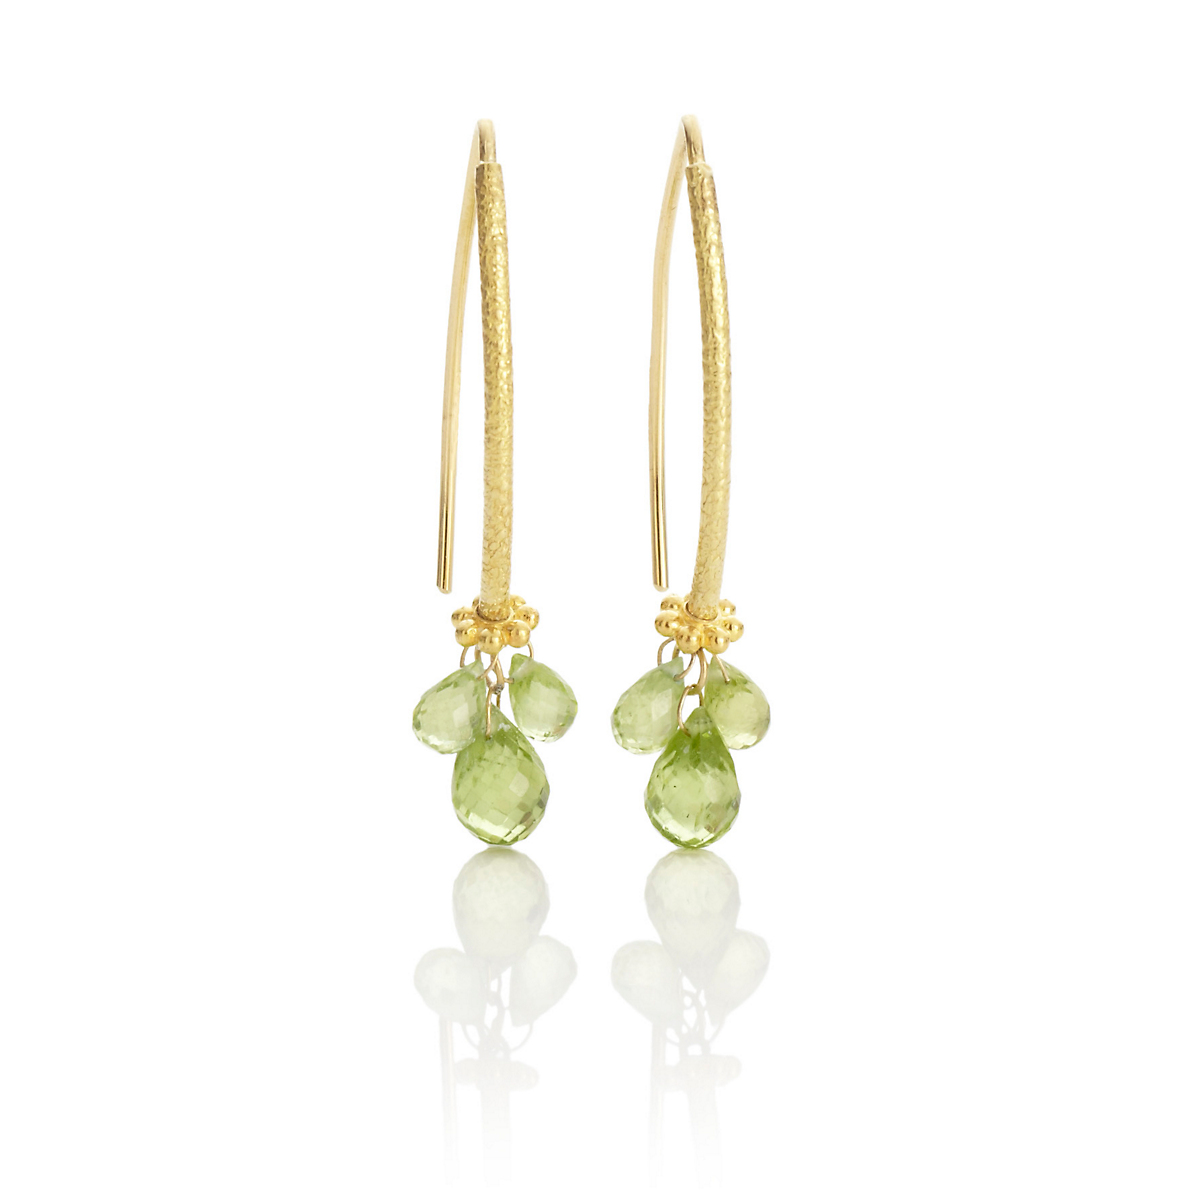 Barbara Heinrich Peridot Briolette Navette Earrings